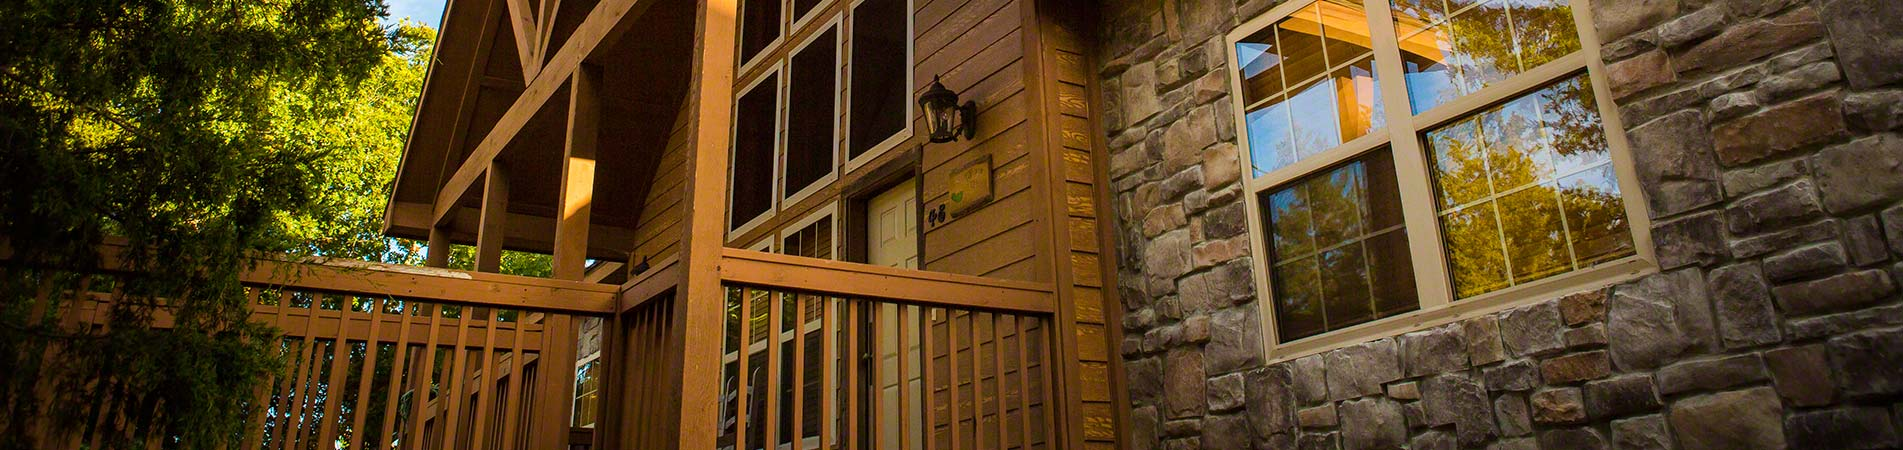 Real Estate Condos Homes For Sale In Branson Mo Sunset